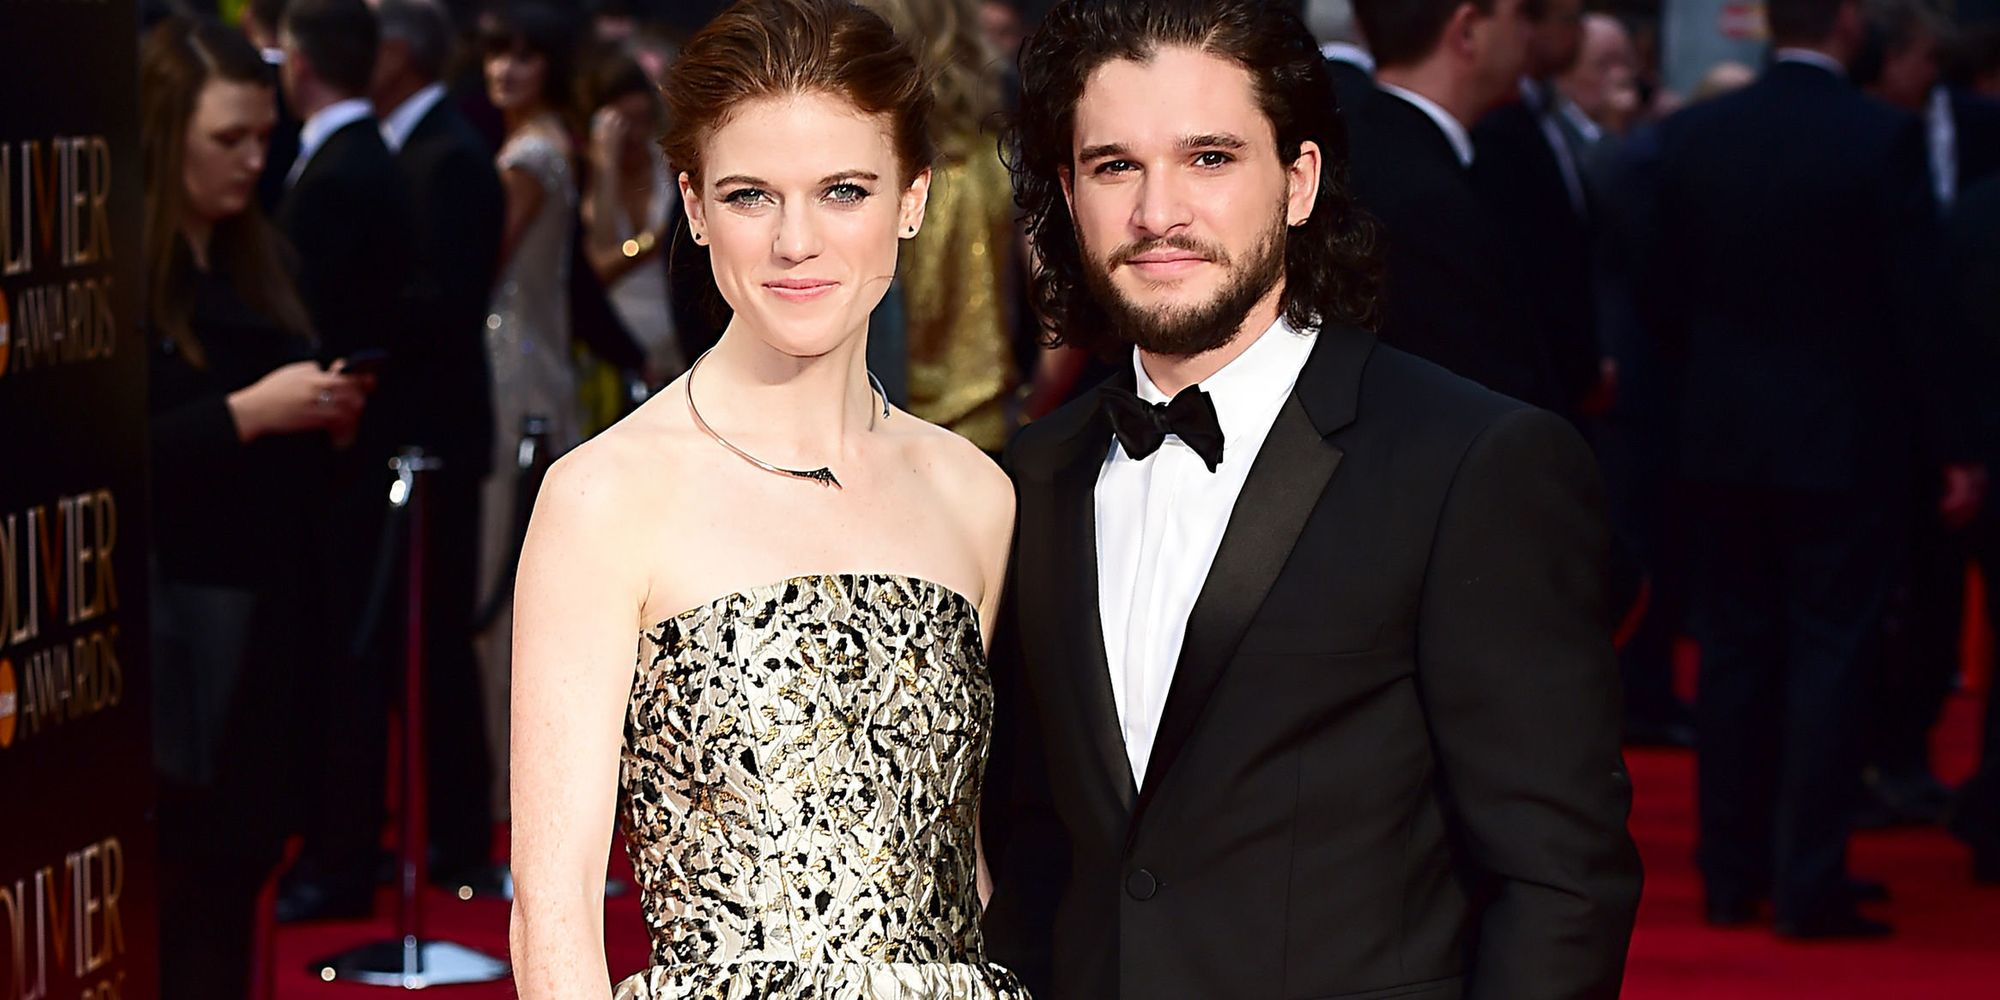 'Game Of Thrones' Kit Harington And Rose Leslie Forced To Speak Out On Engagement Rumours